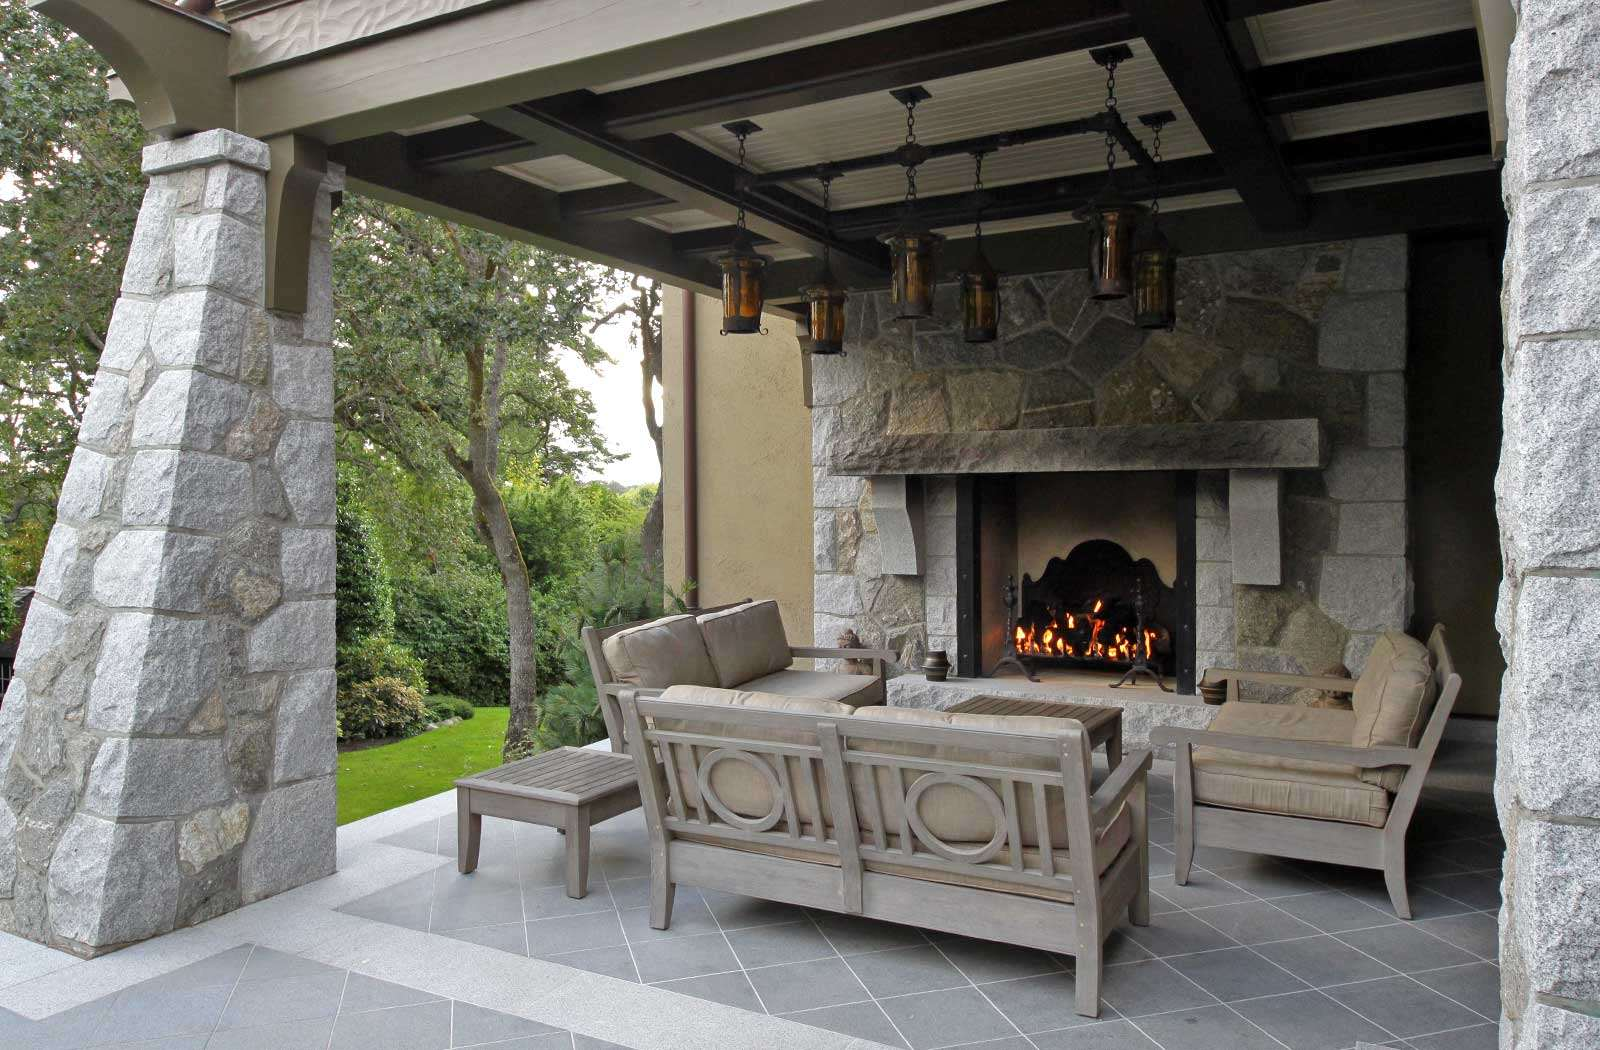 diy fire fireplaces ideas design hgtv spaces chimney pits and fireplace outdoor